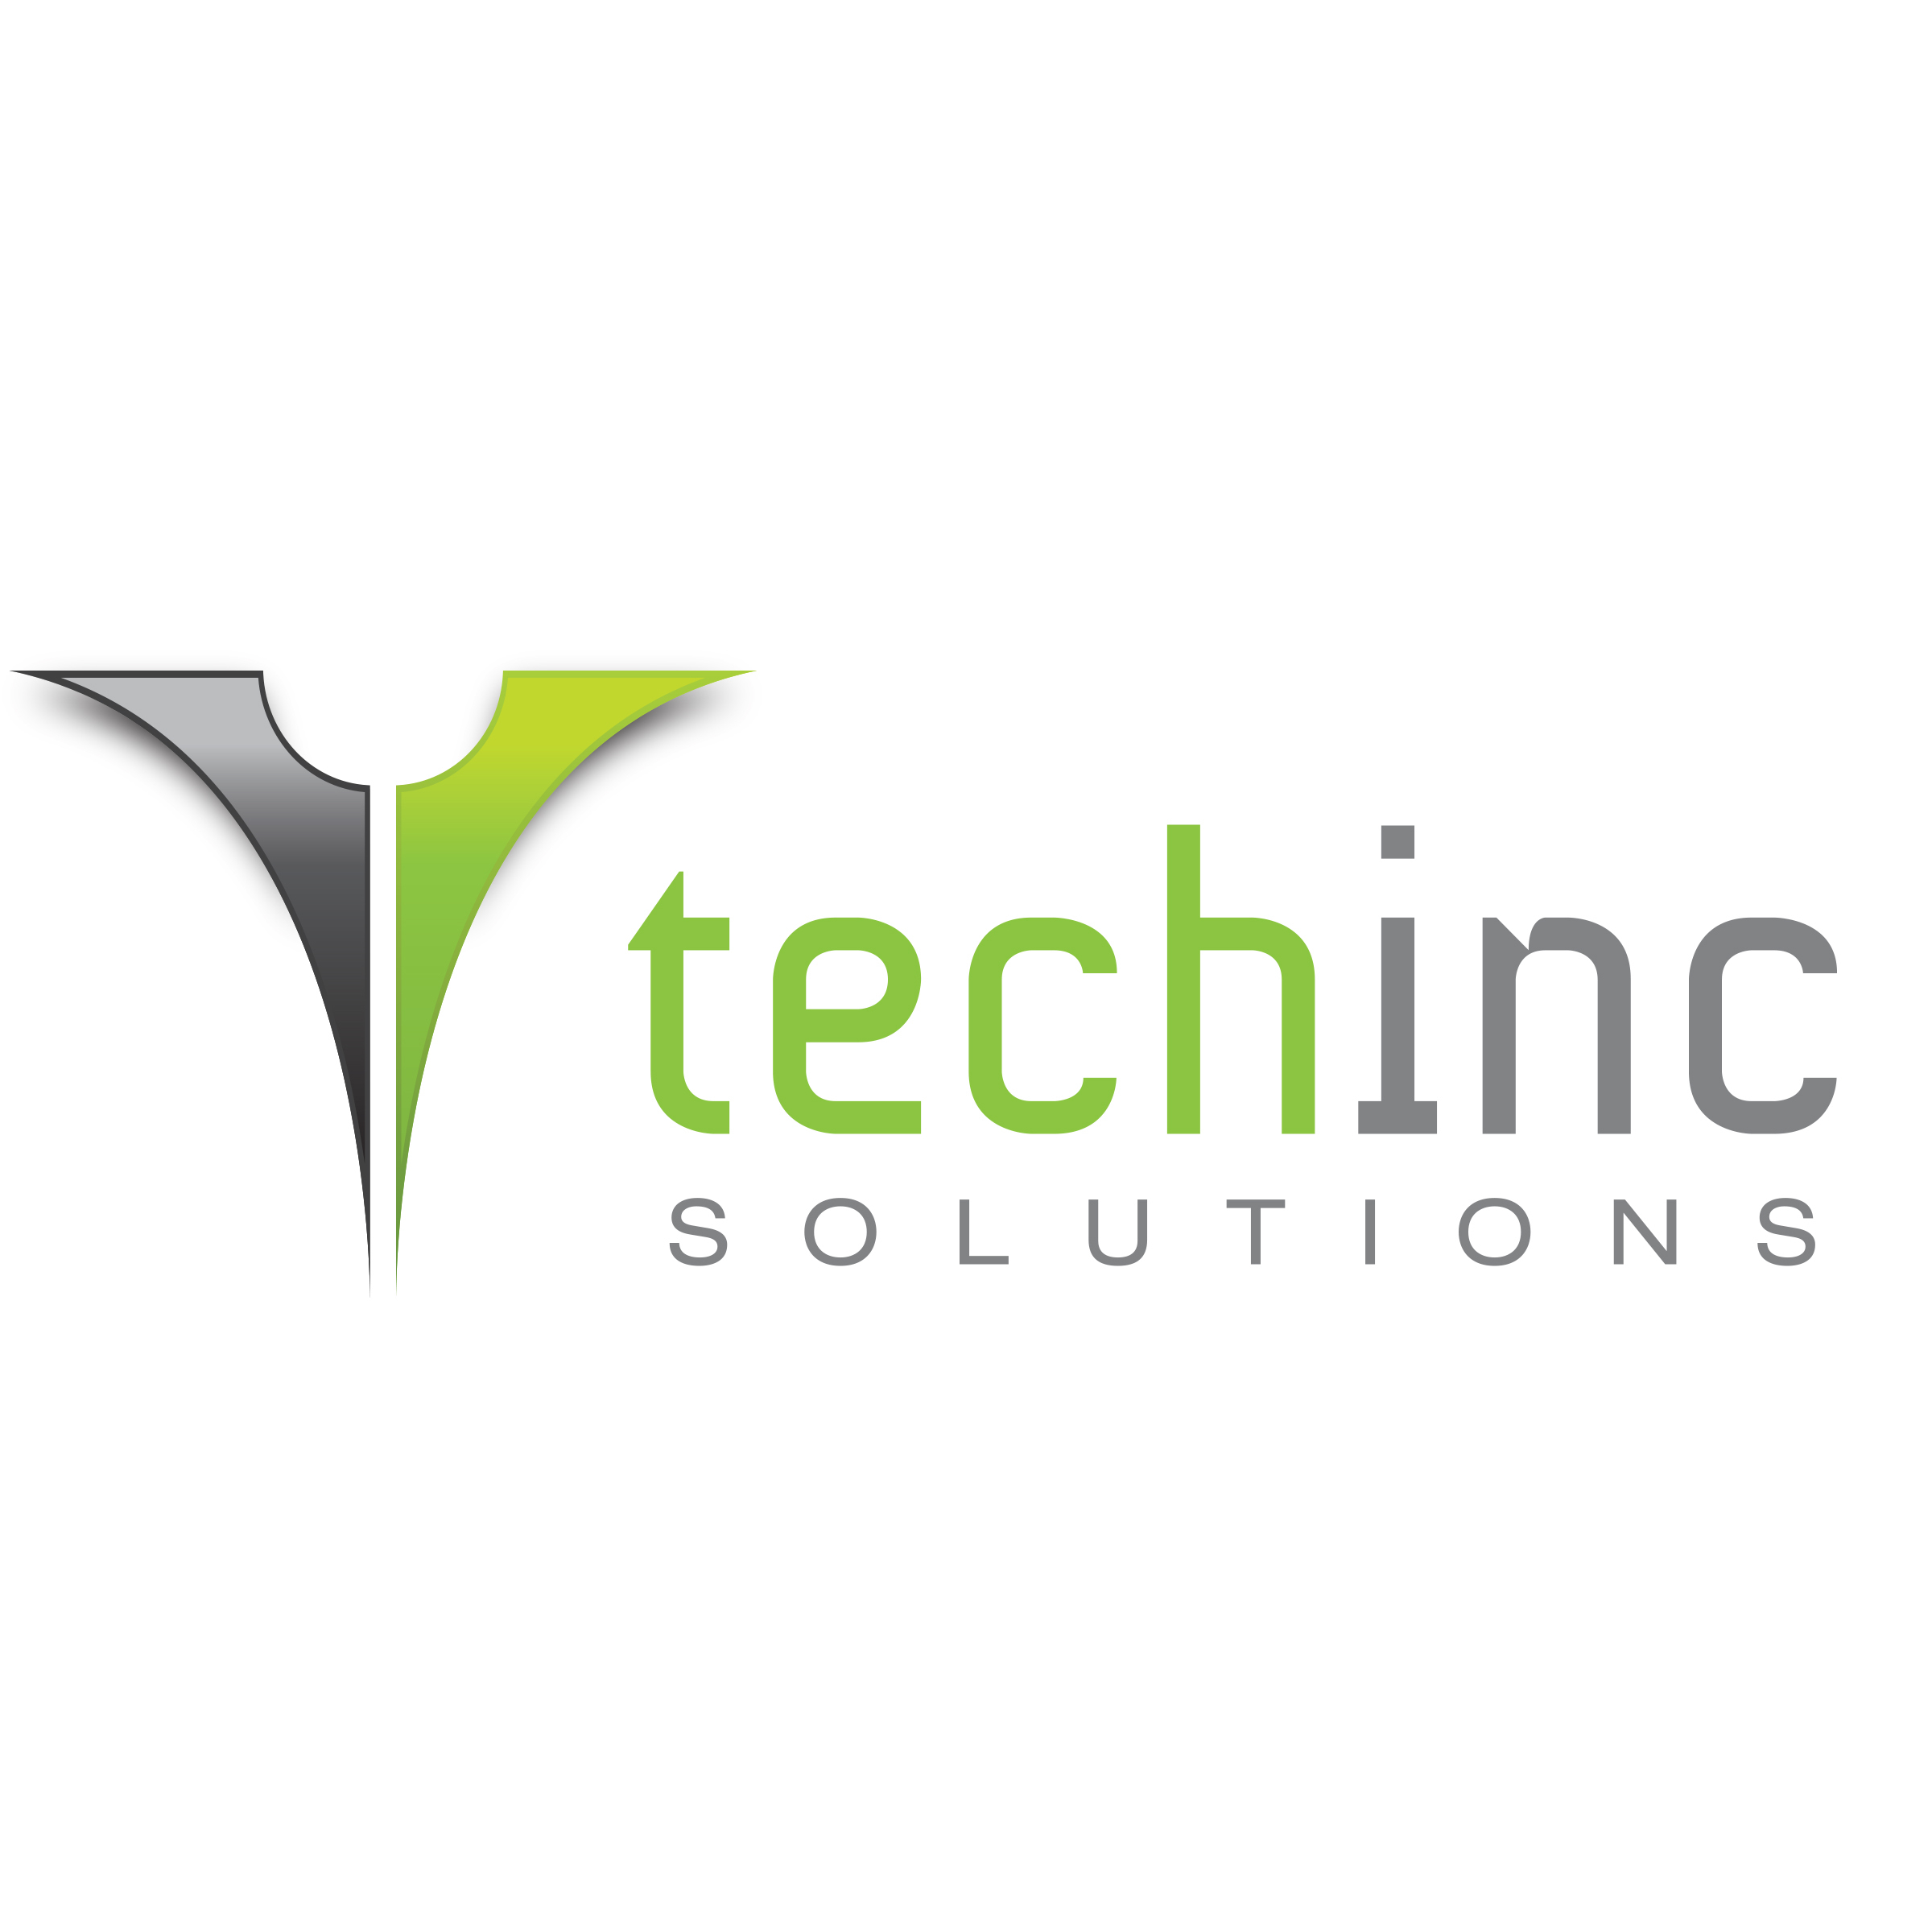 Tech Inc Solutions - Denver, CO - Computer Consulting Services